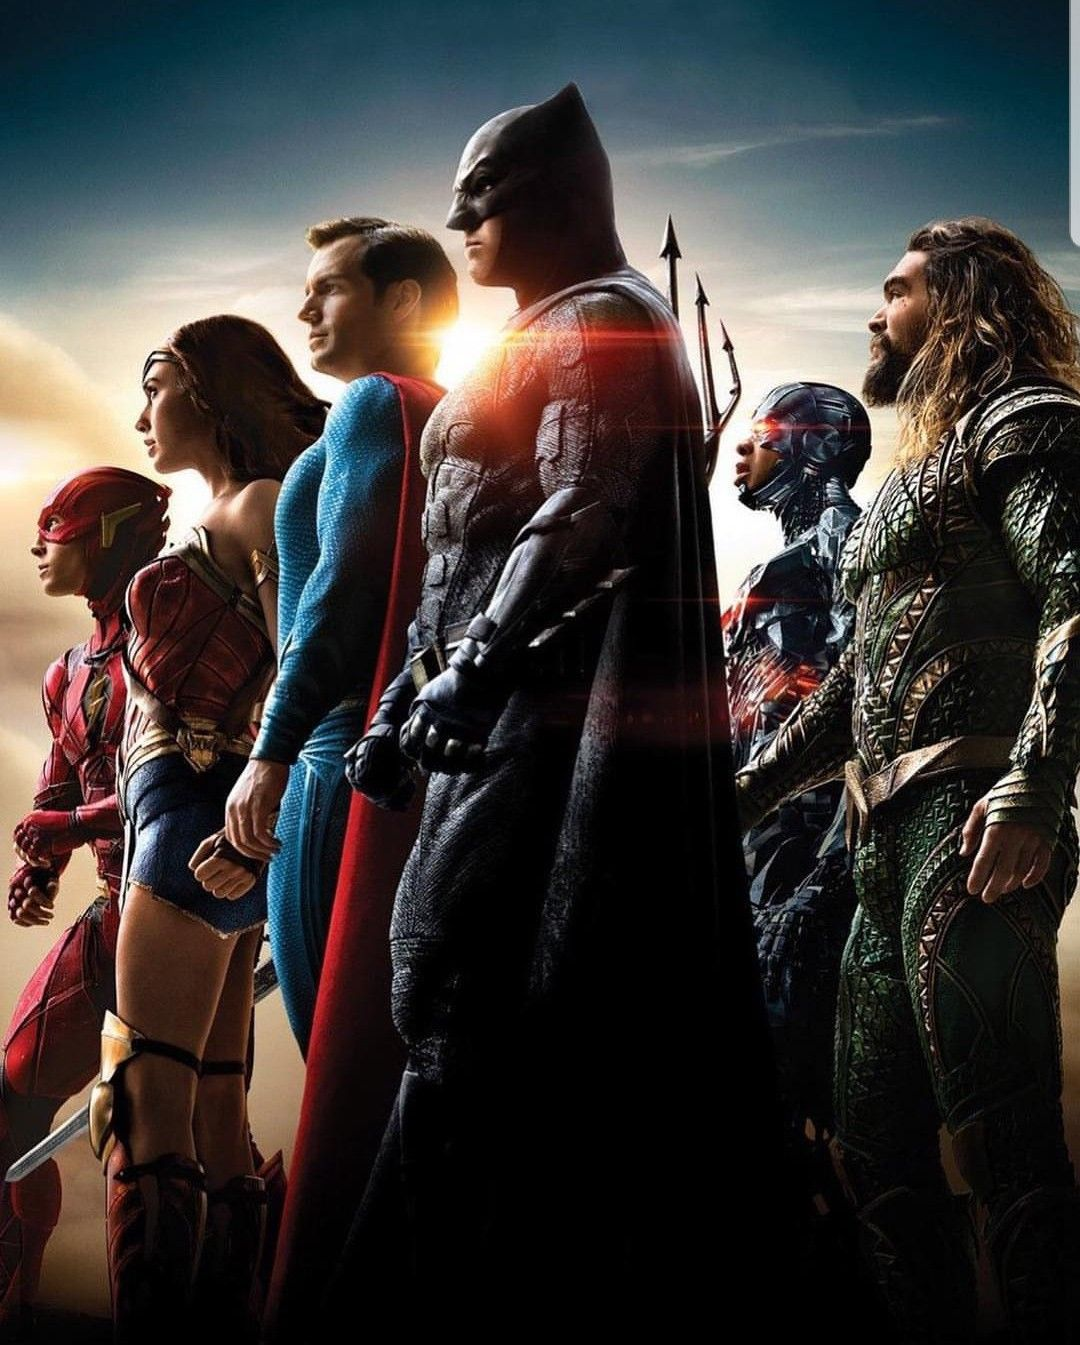 Justice League Wallpaper Justice League Full Movie Watch Justice League Justice League 2017